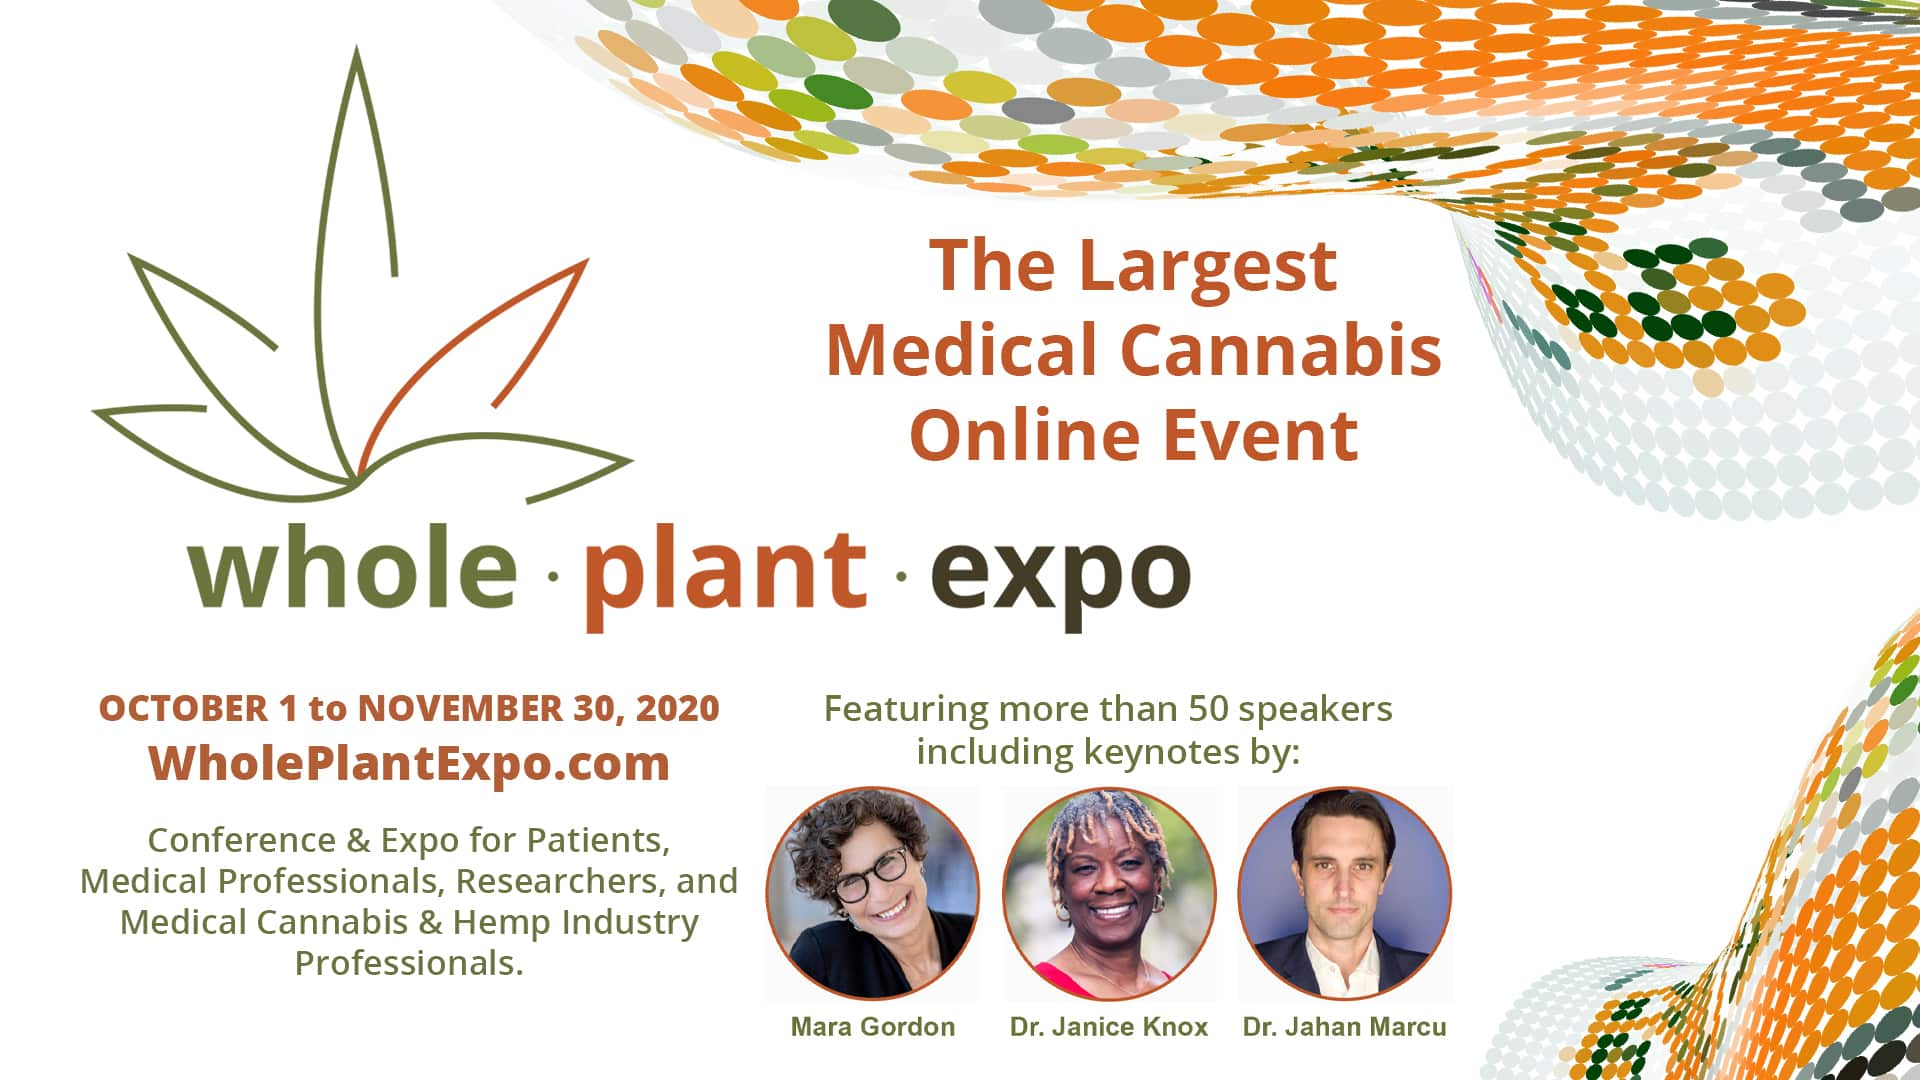 Whole Plant Expo